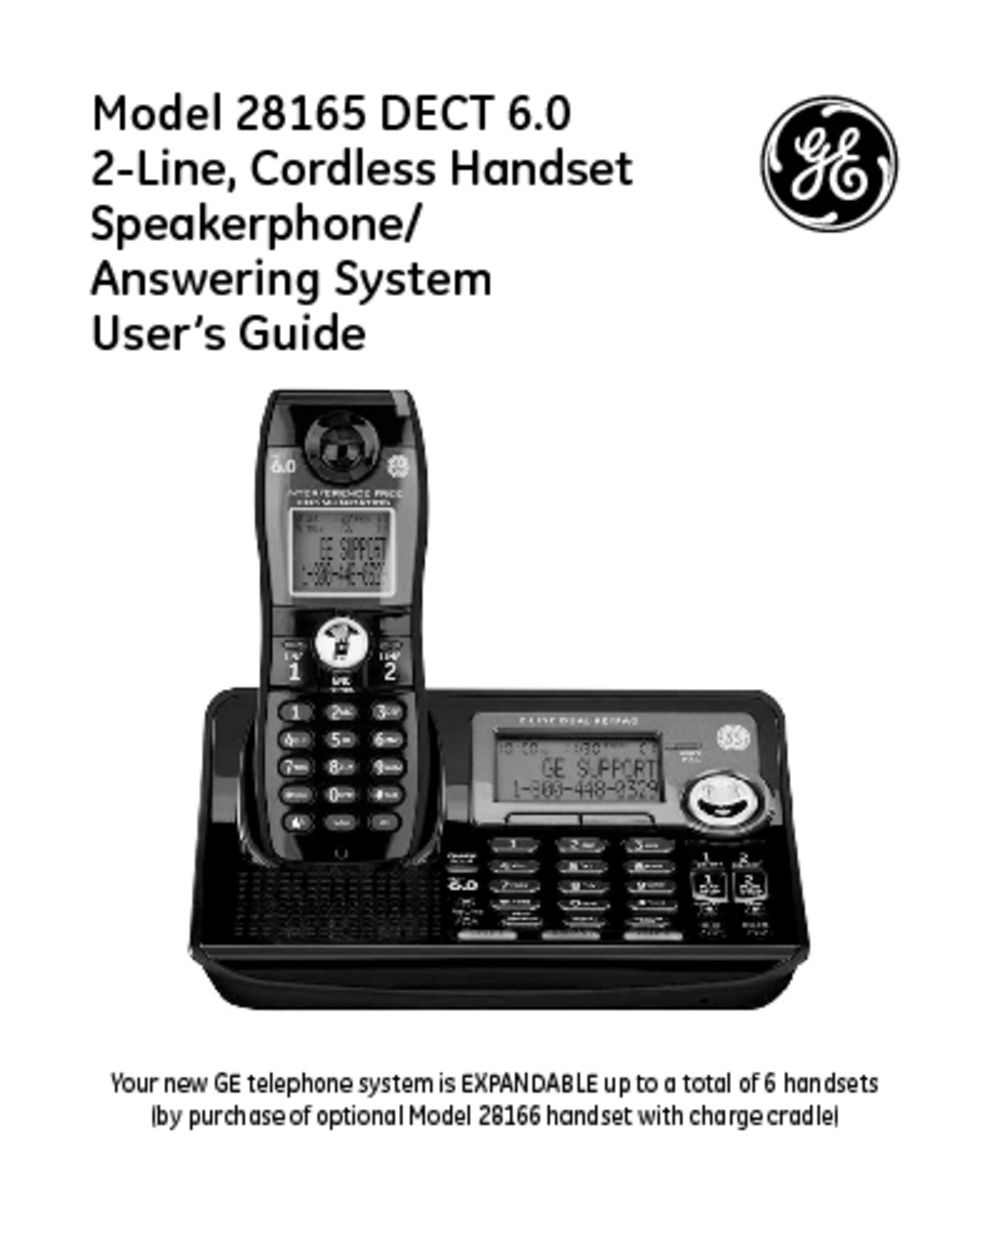 cordless telephone users guides cordless telephone page 290 rh usersmanuals1 com Telephone with Answering Machine Player ge dect 6.0 phone answering machine manual